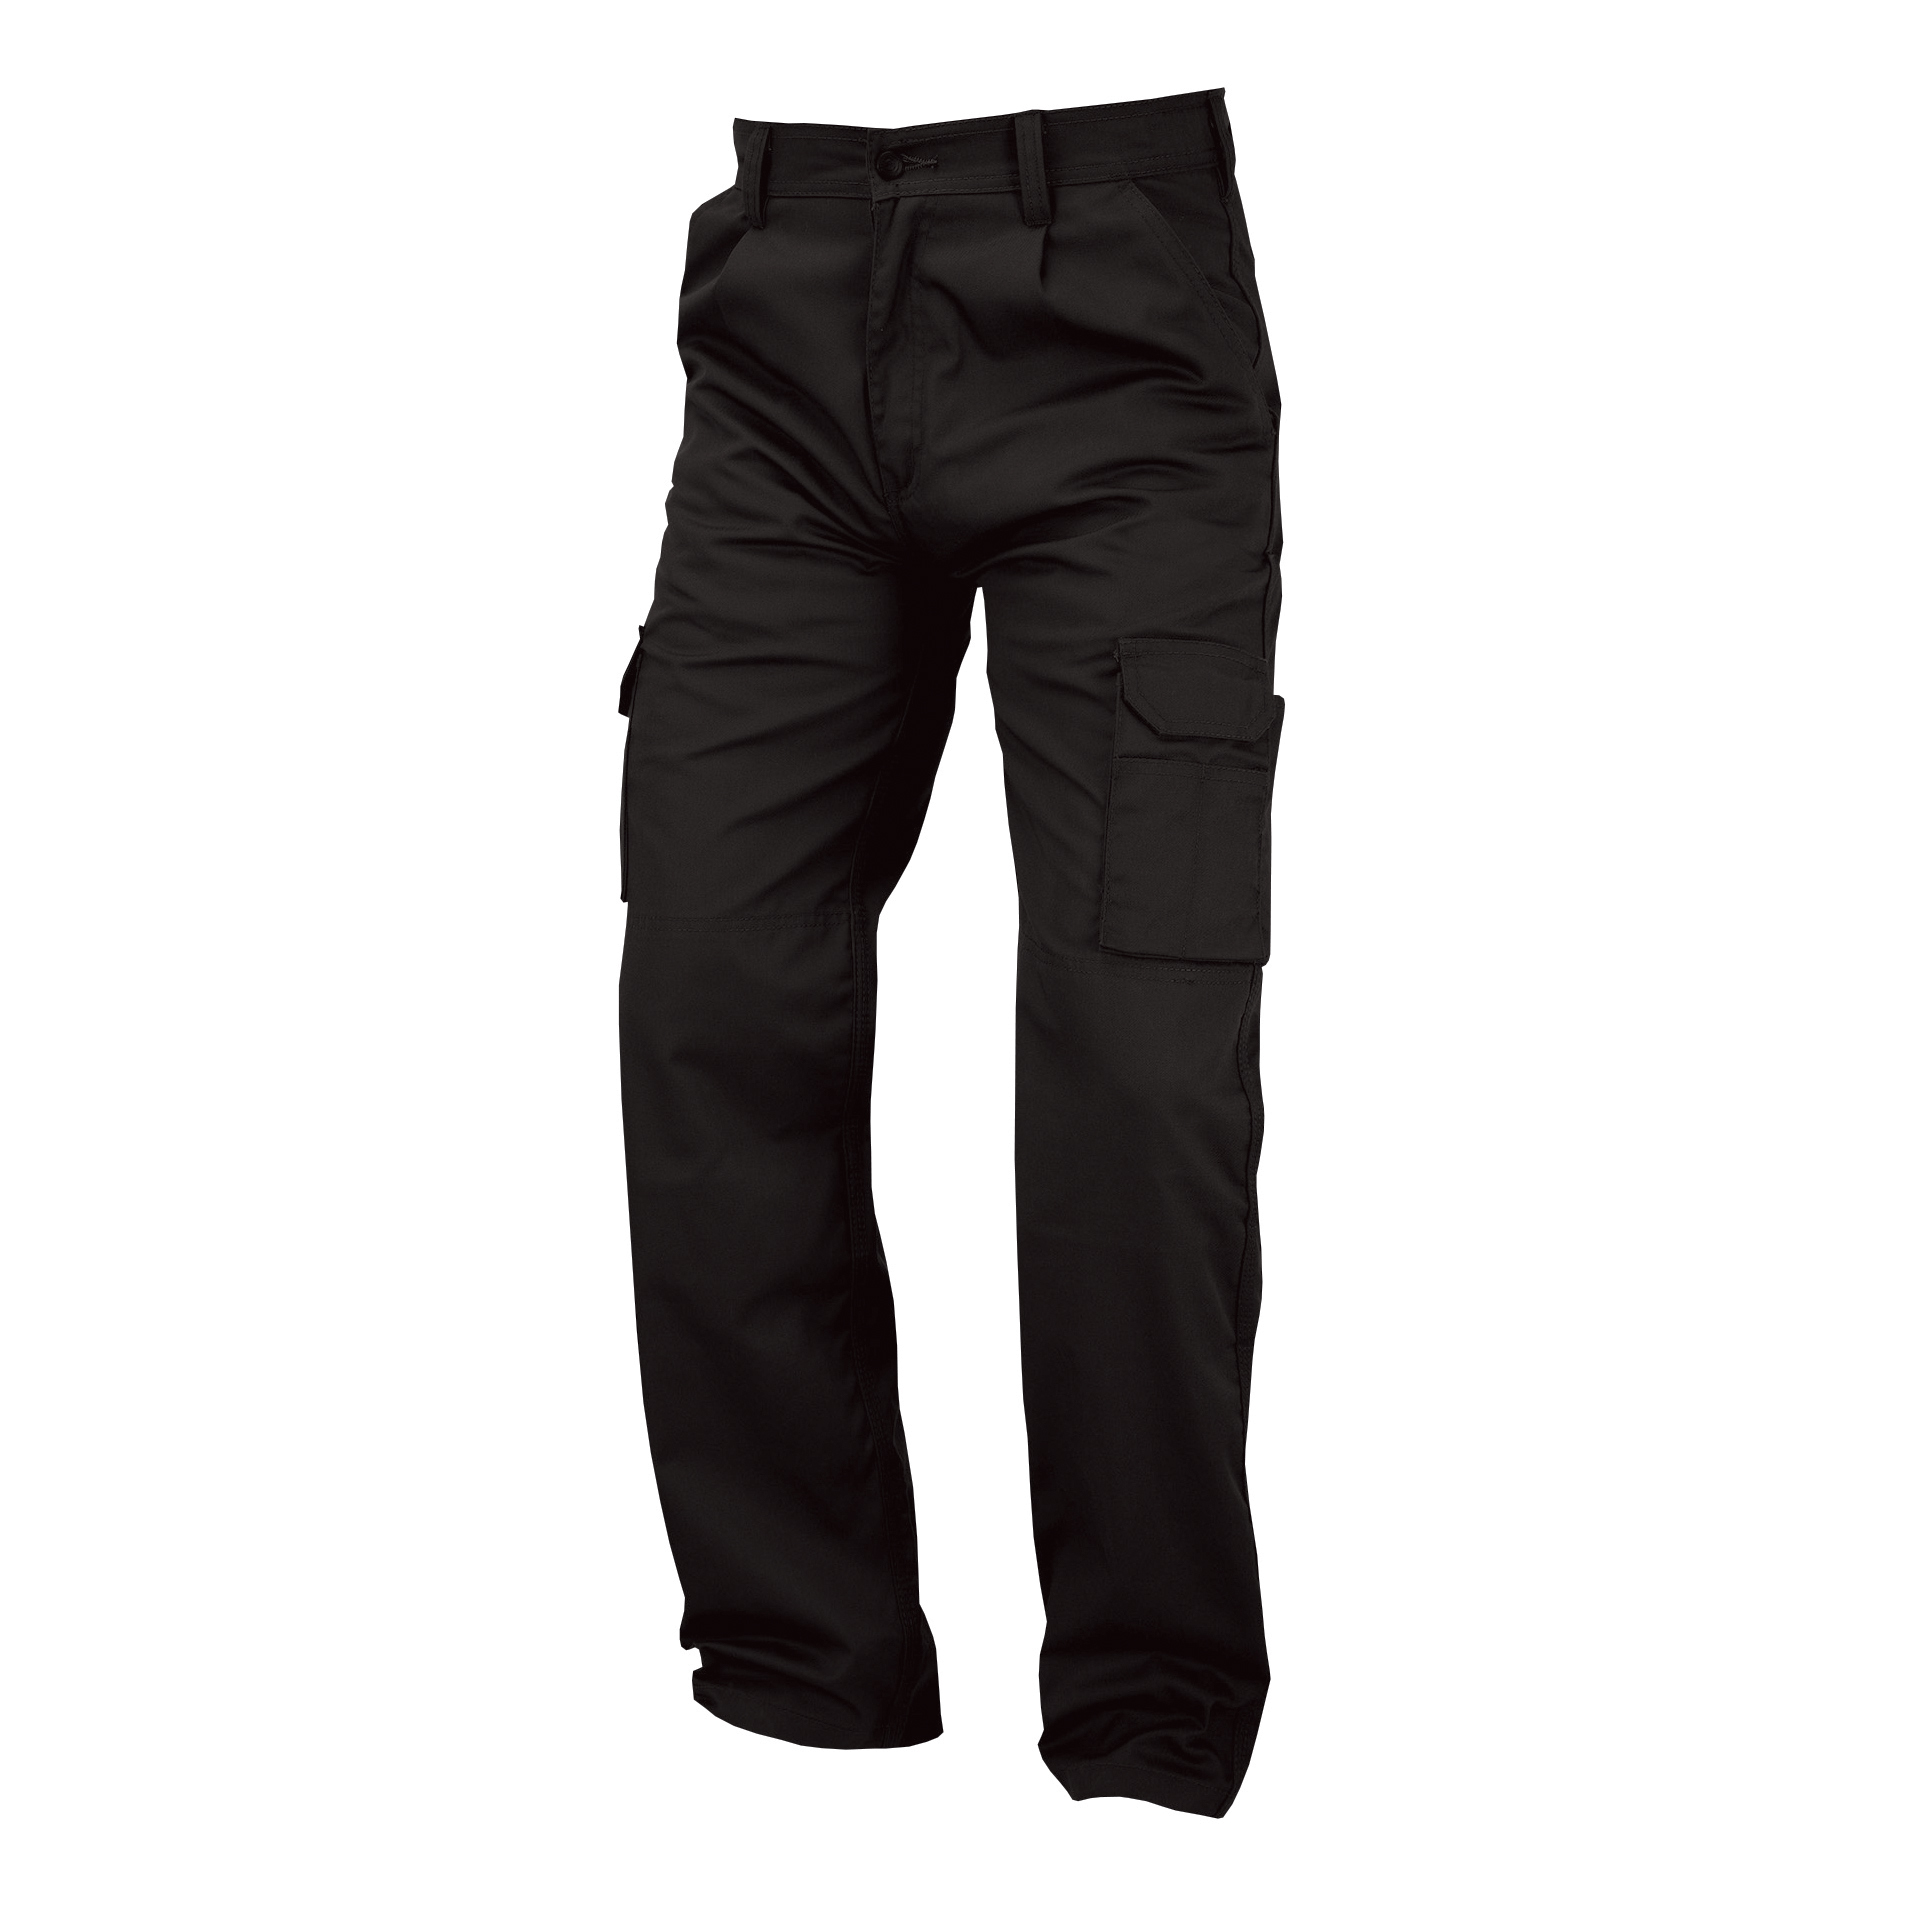 Combat Trouser Multi-functional Waist 36in Leg 29in Black Ref PCTHWBL36S *Approx 3 Day Leadtime*